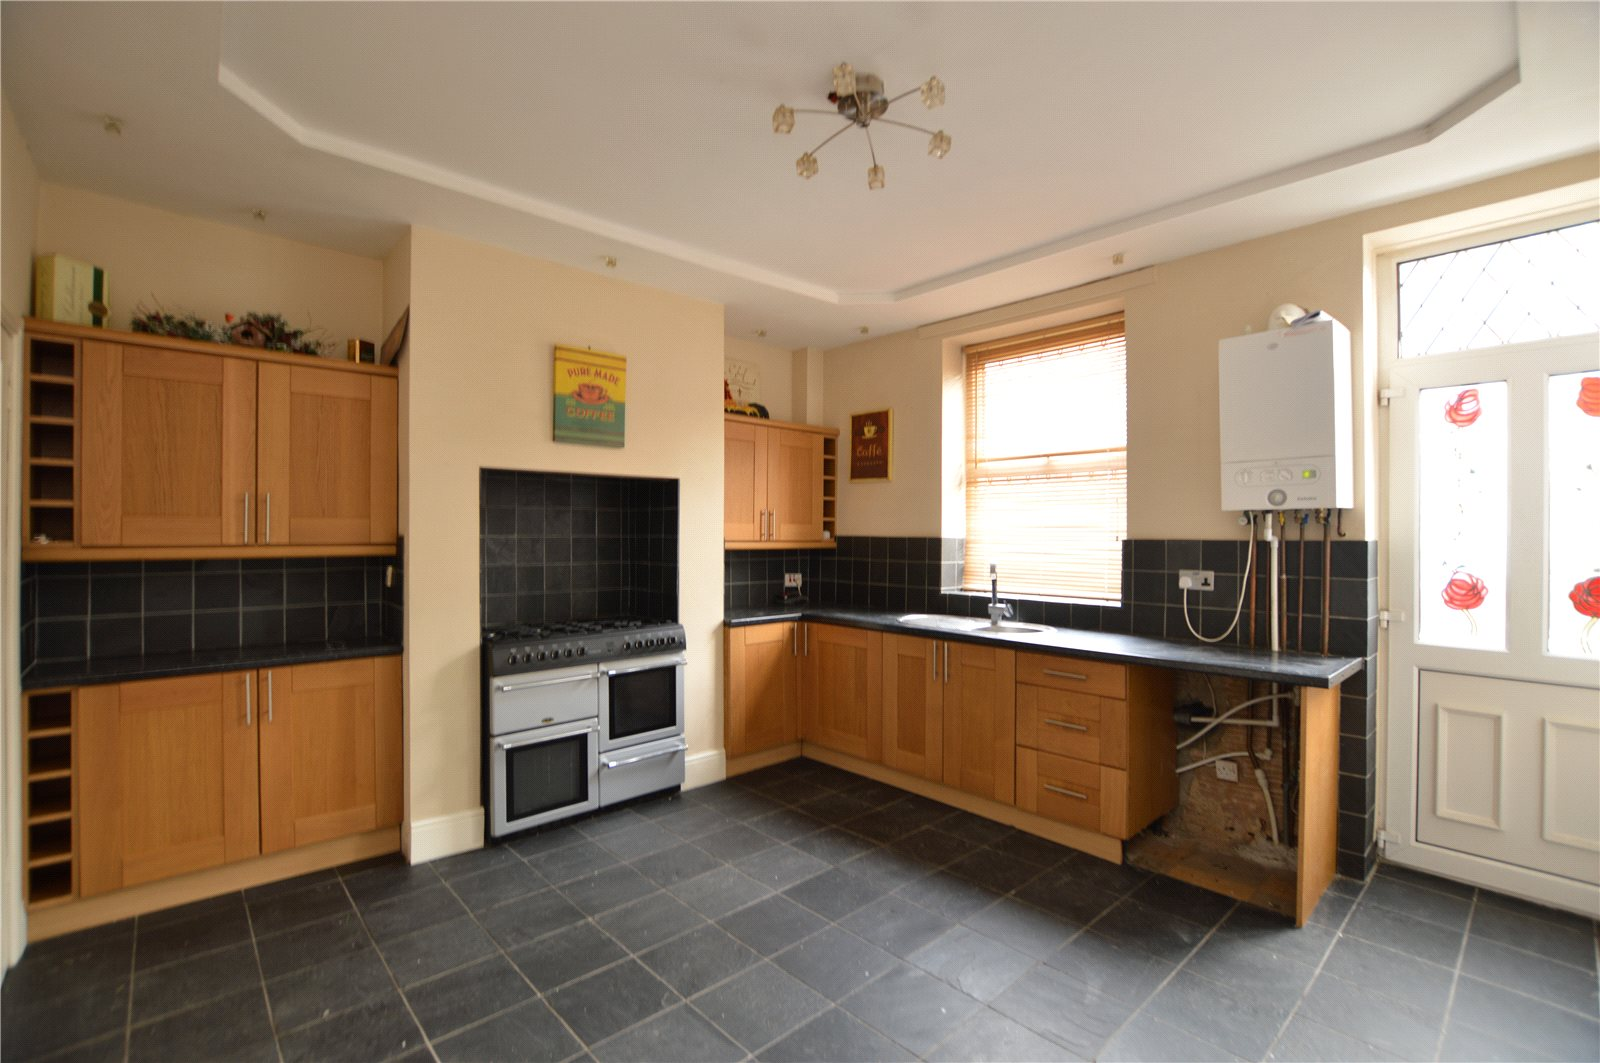 Property for sale Wakefield, interior fitted kitchen